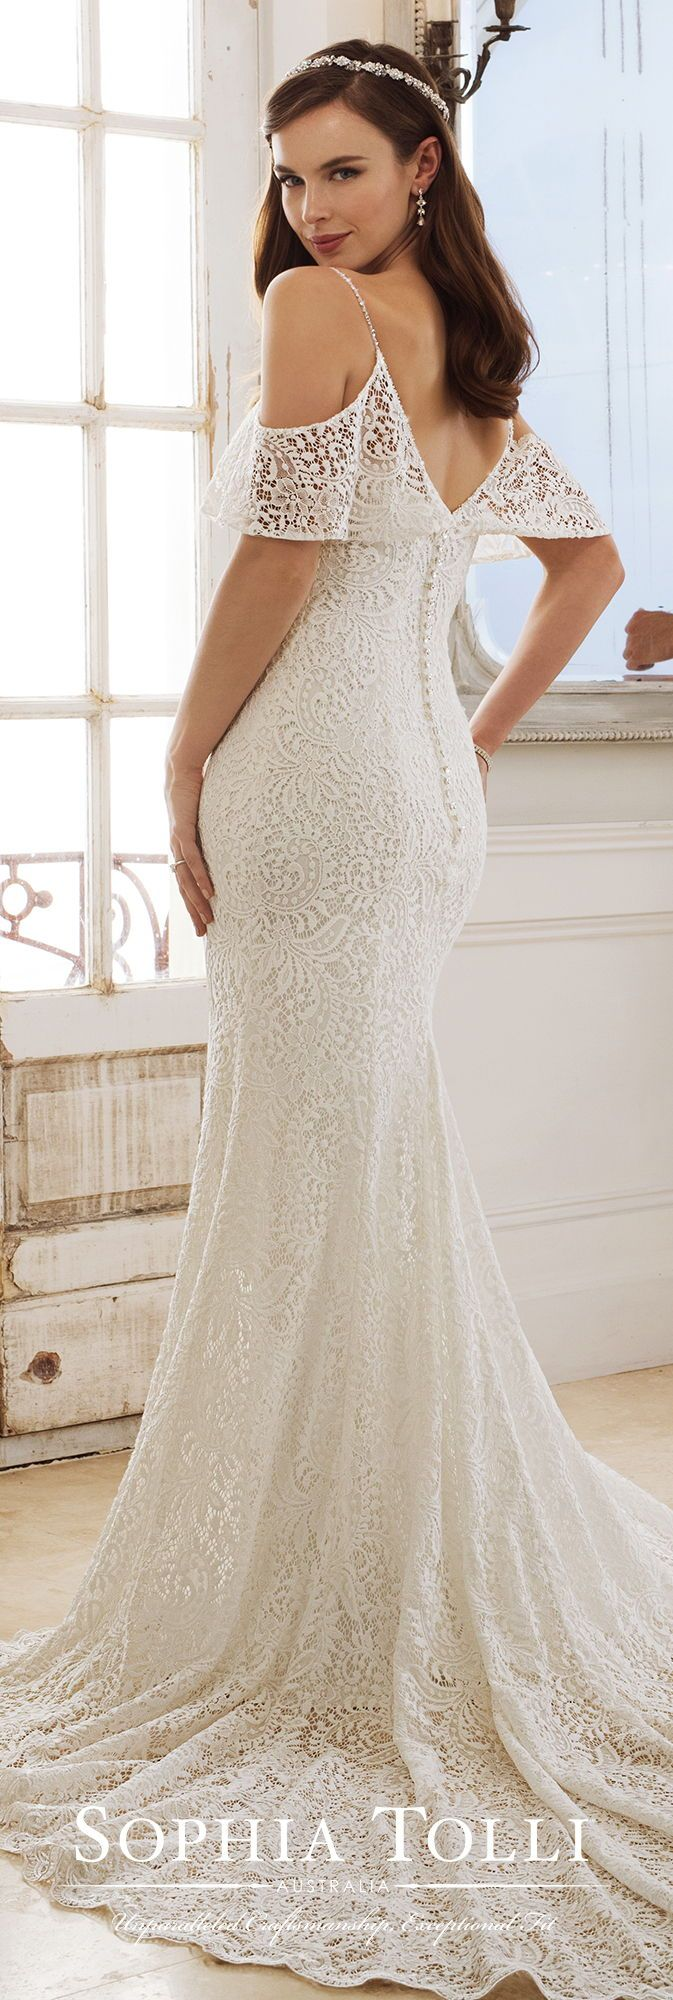 Lace spaghetti strap wedding dress   best Bridal images on Pinterest  Homecoming dresses straps